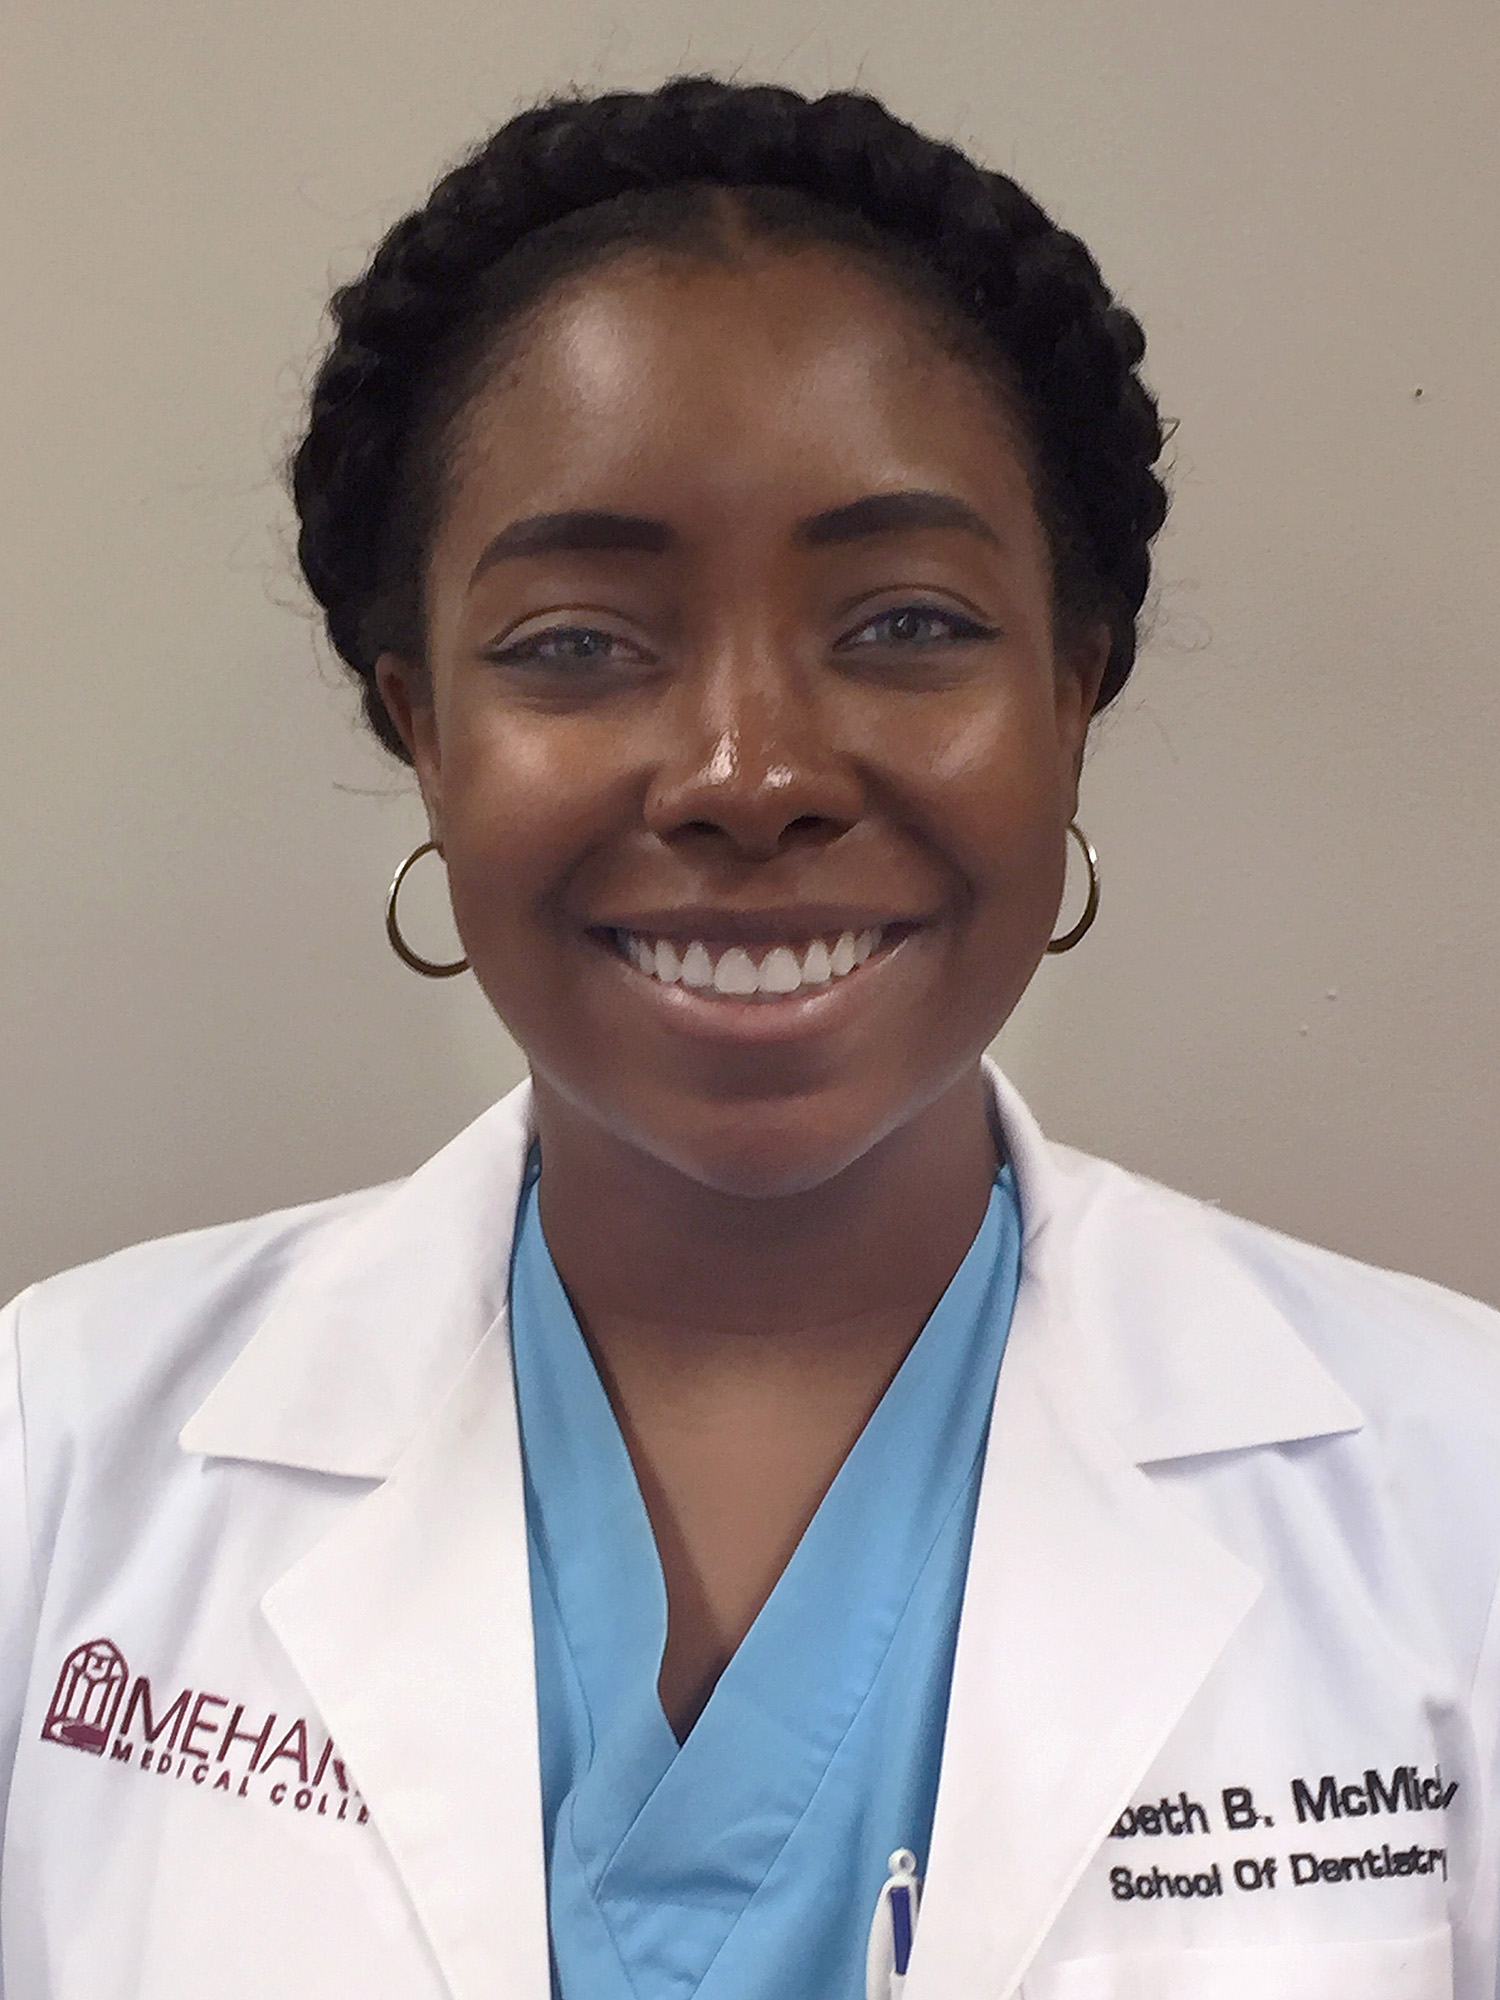 Elizabeth B. McMichael is a senior dental student at Meharry Medical College. Photo by Sandra Long Weaver.